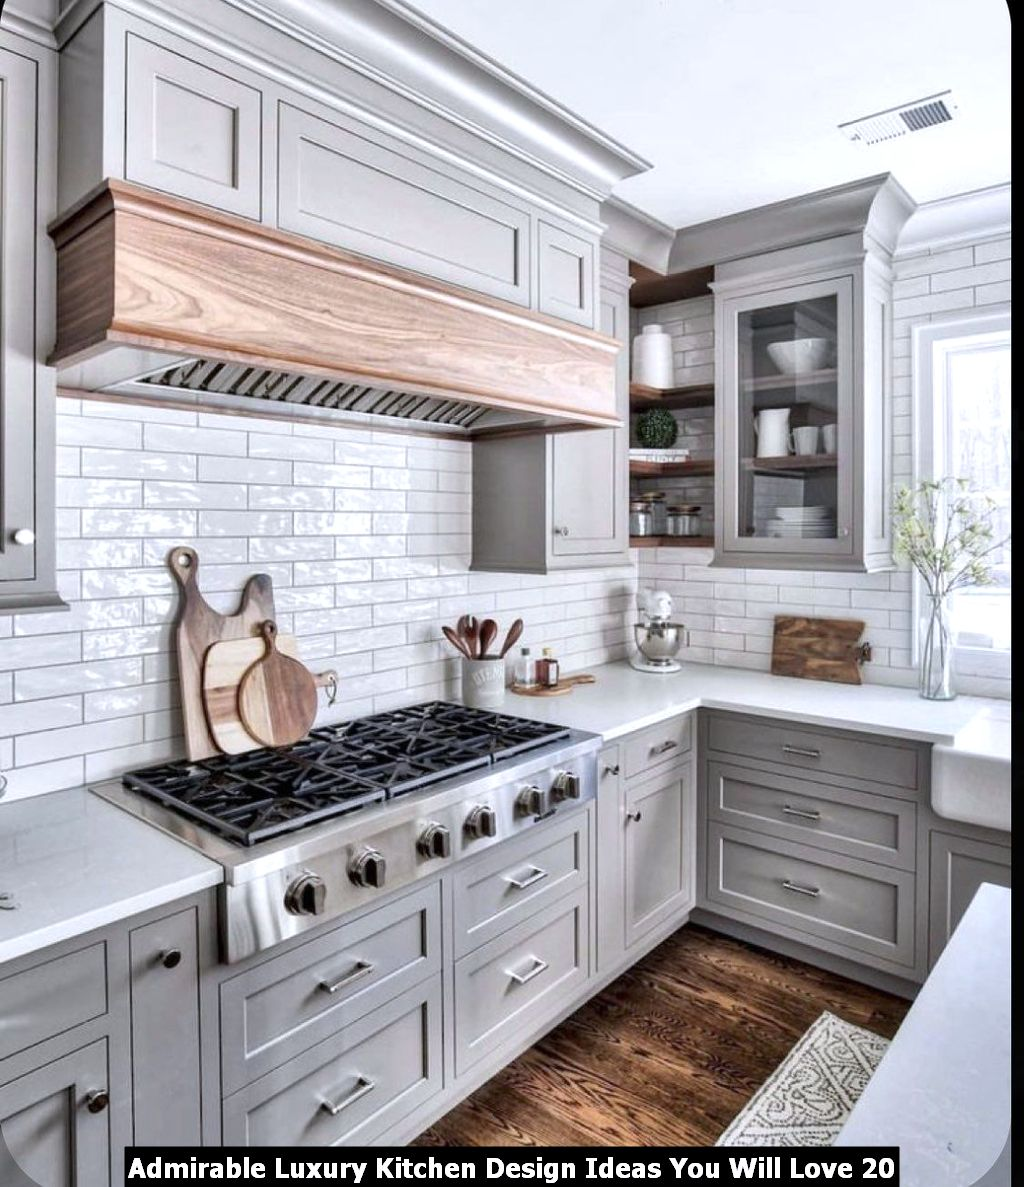 Admirable Luxury Kitchen Design Ideas You Will Love 20